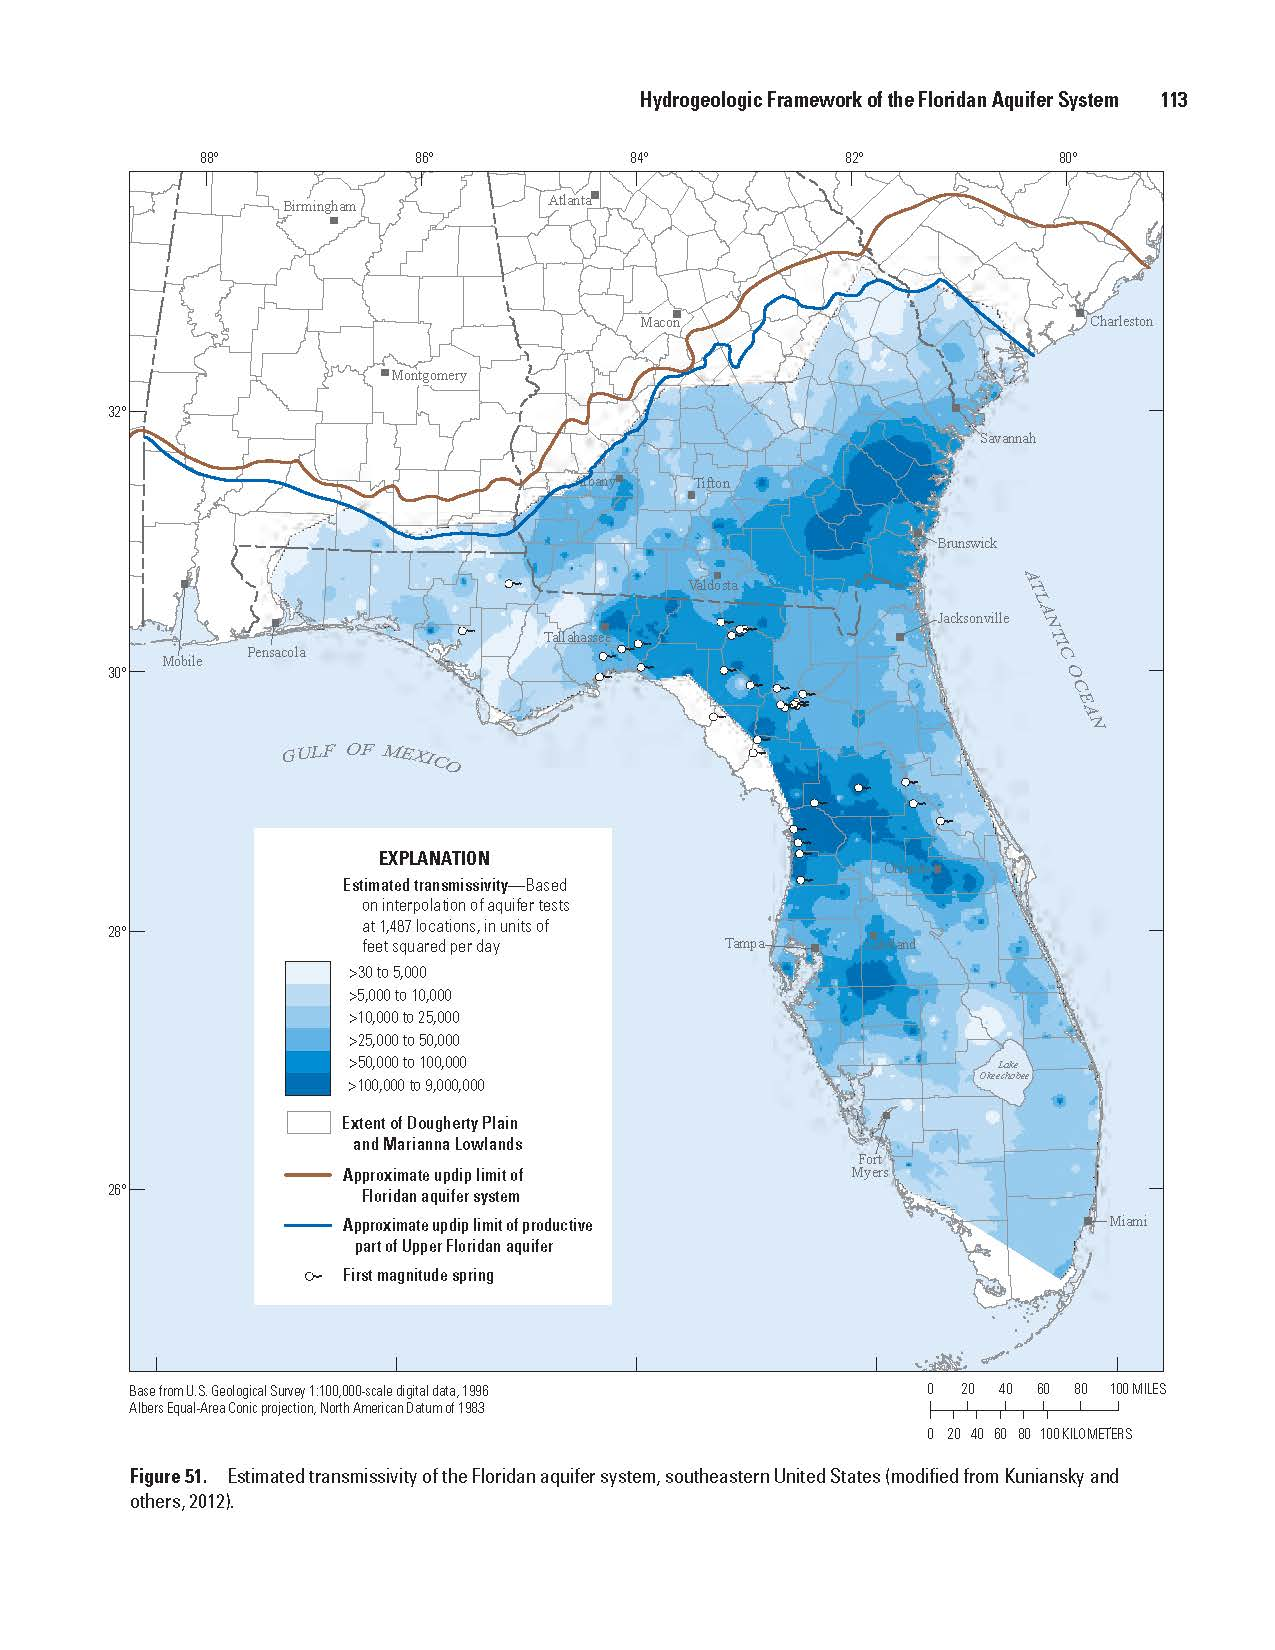 Transmissivity of the Upper Floridan aquifer system